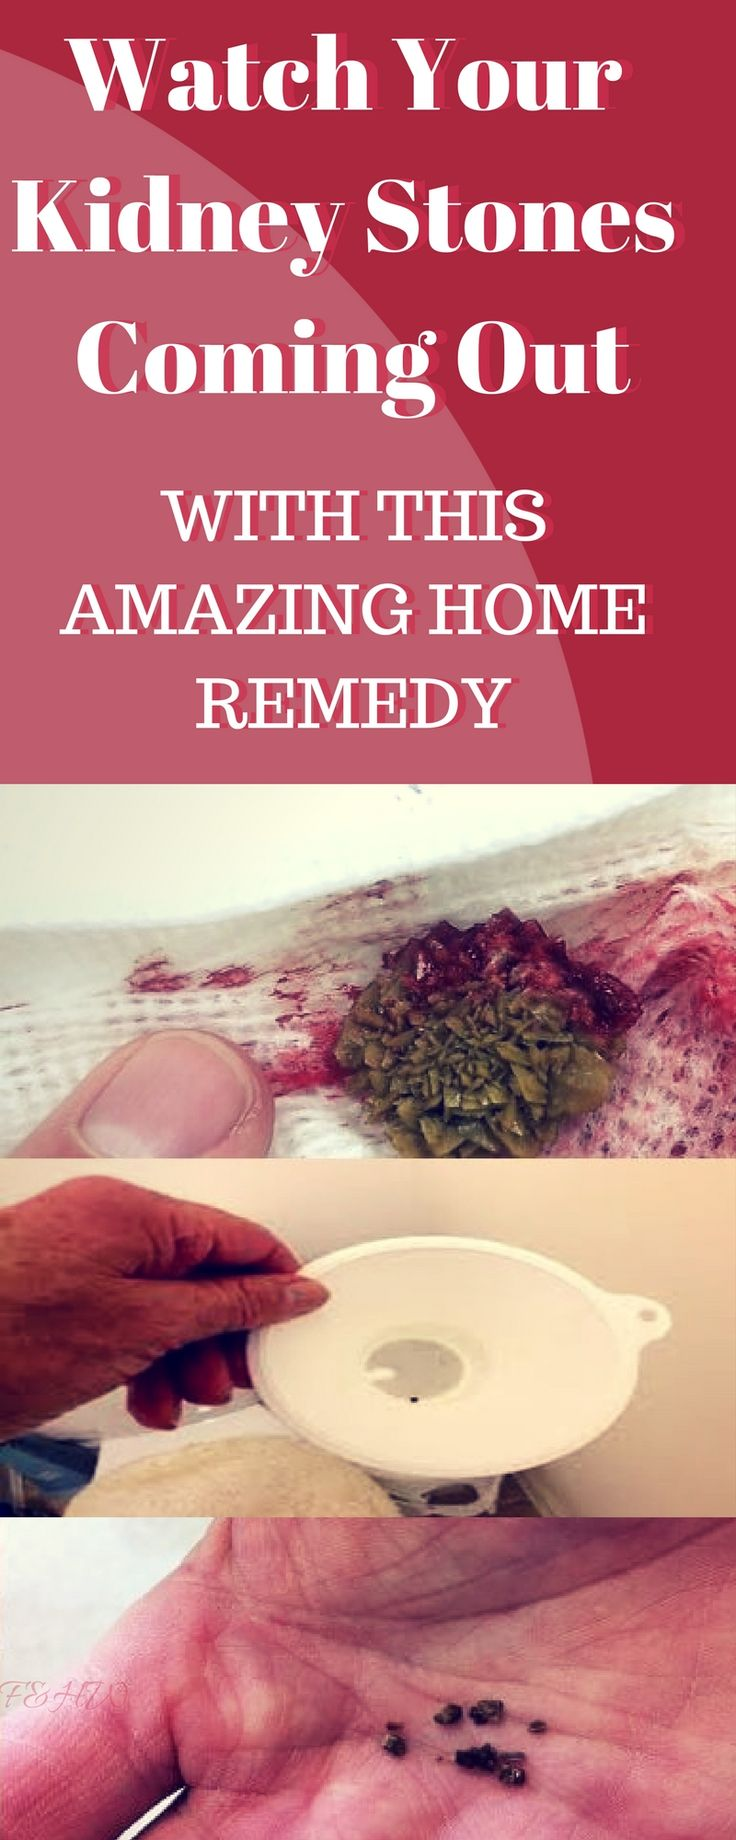 Watch Your Kidney Stones Coming Out With This Amazing Home Remedy http://wp.me/p7S39D-Nf